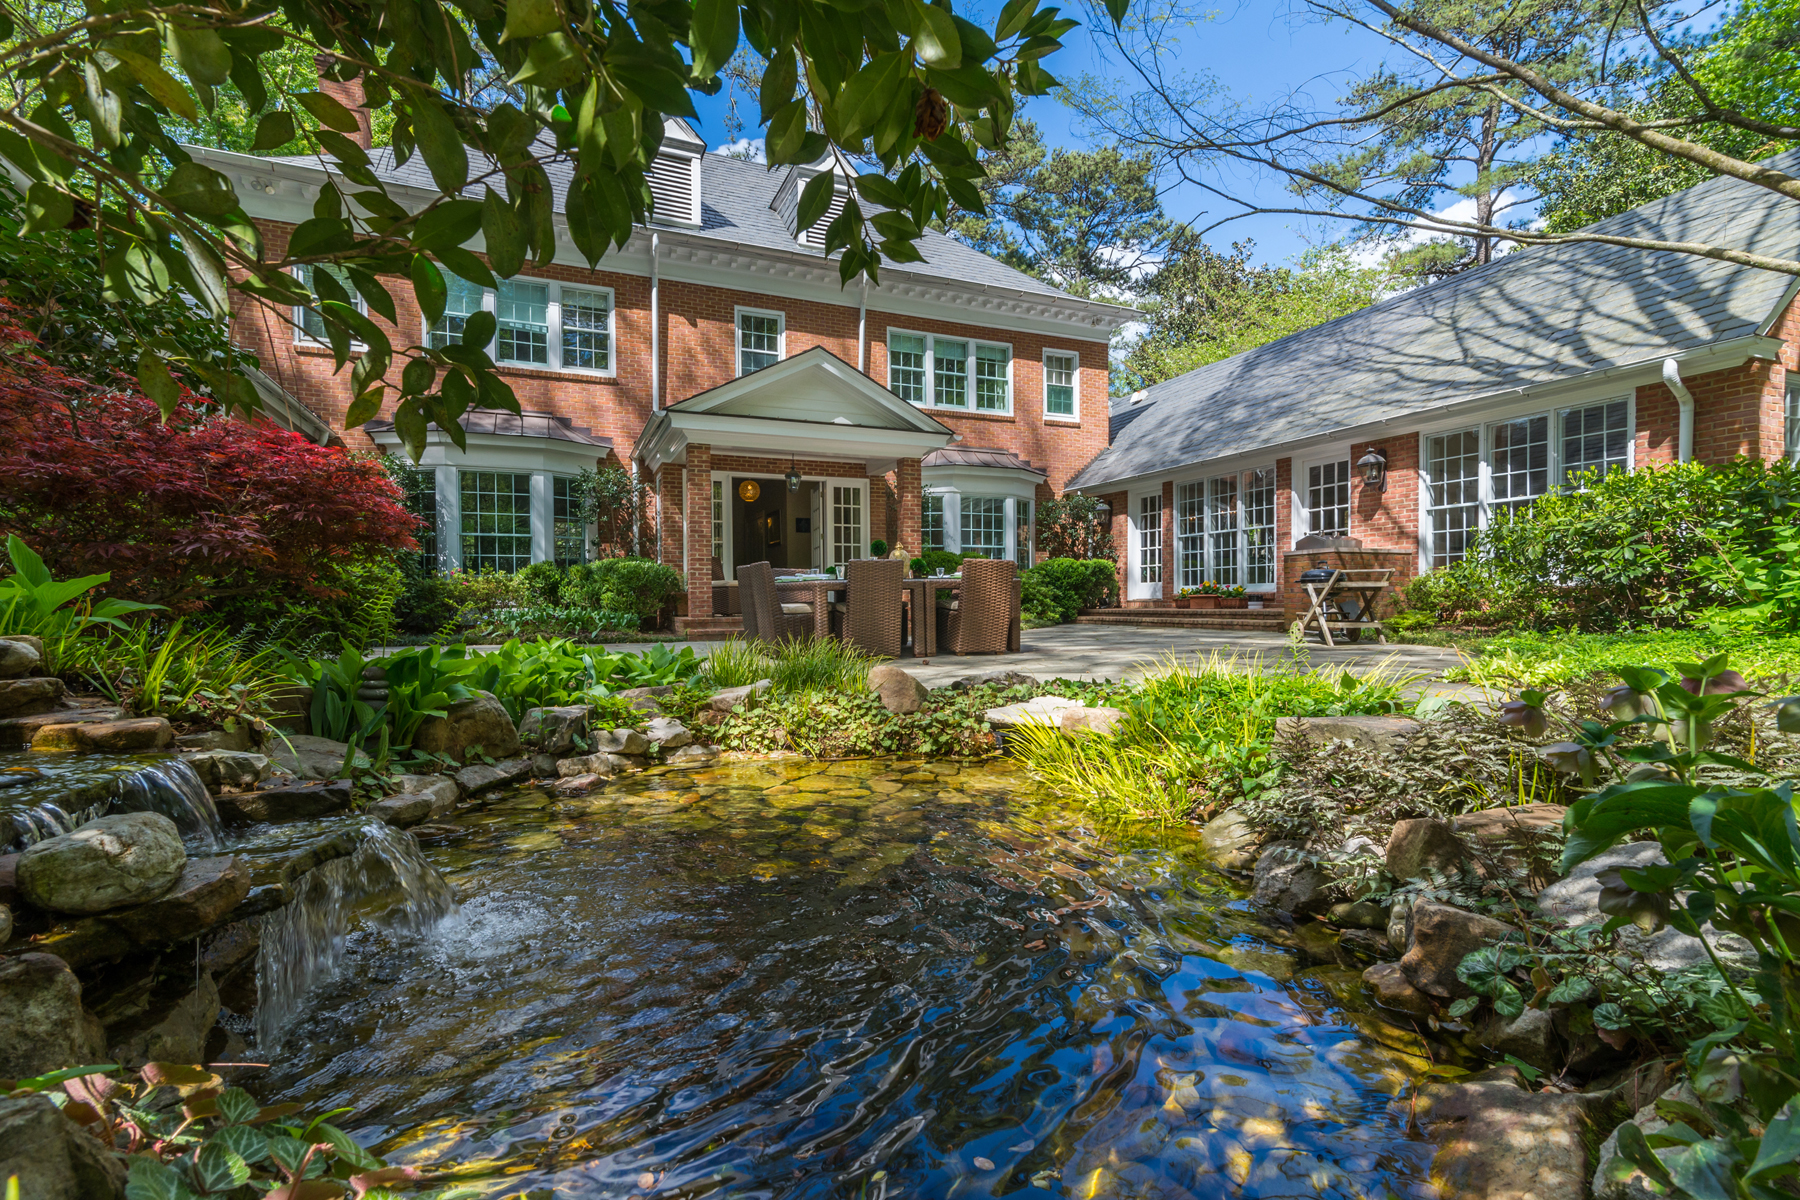 獨棟家庭住宅 為 出售 在 A Private And Unique Oasis In The Heart Of Buckhead 650 W Paces Ferry Road NW Buckhead, Atlanta, 喬治亞州, 30327 美國